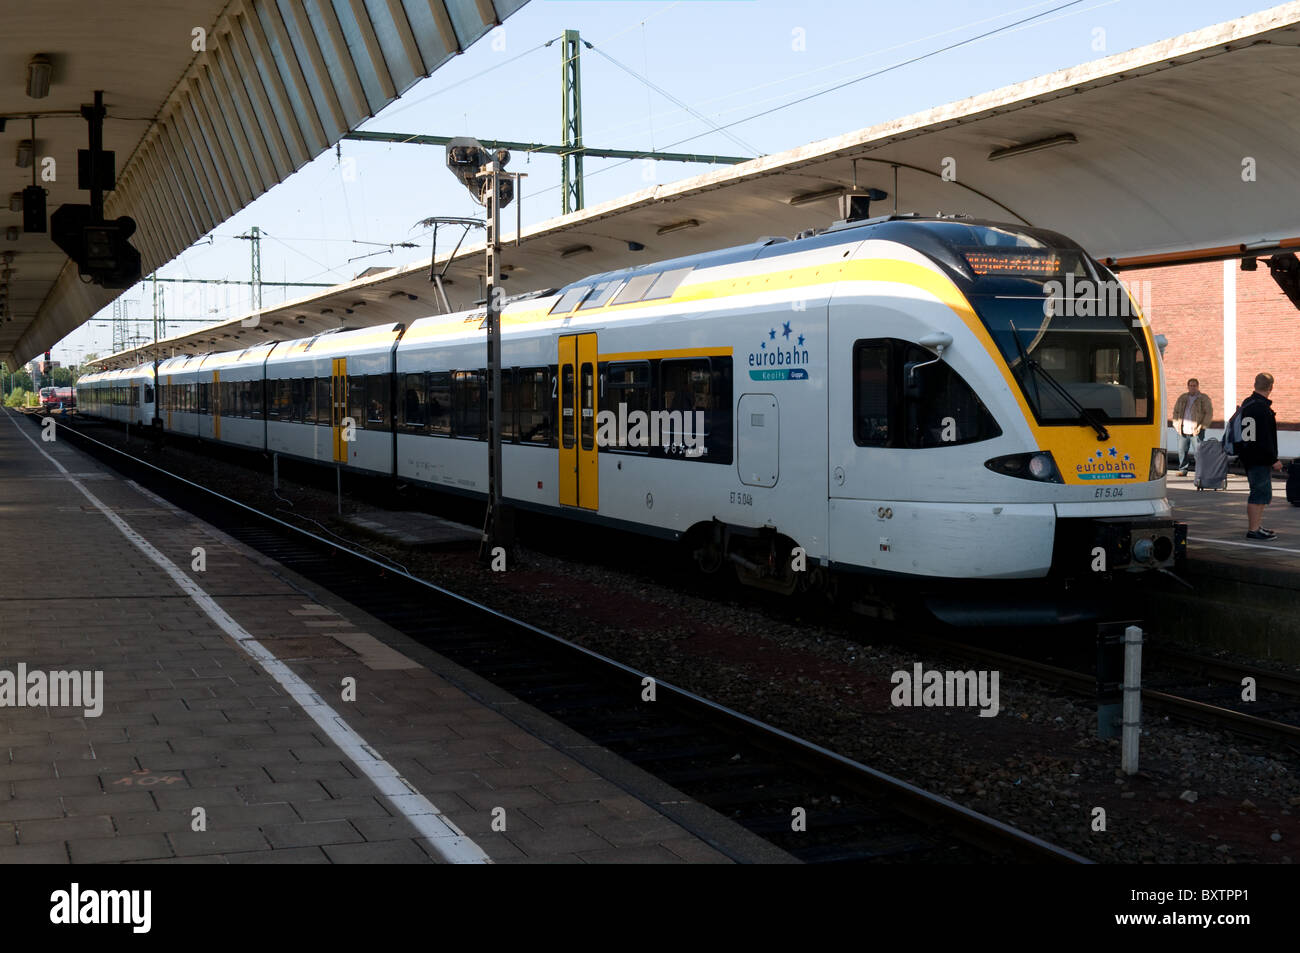 A two set Eurobahn electric multiple unit train waits in Munster station. - Stock Image